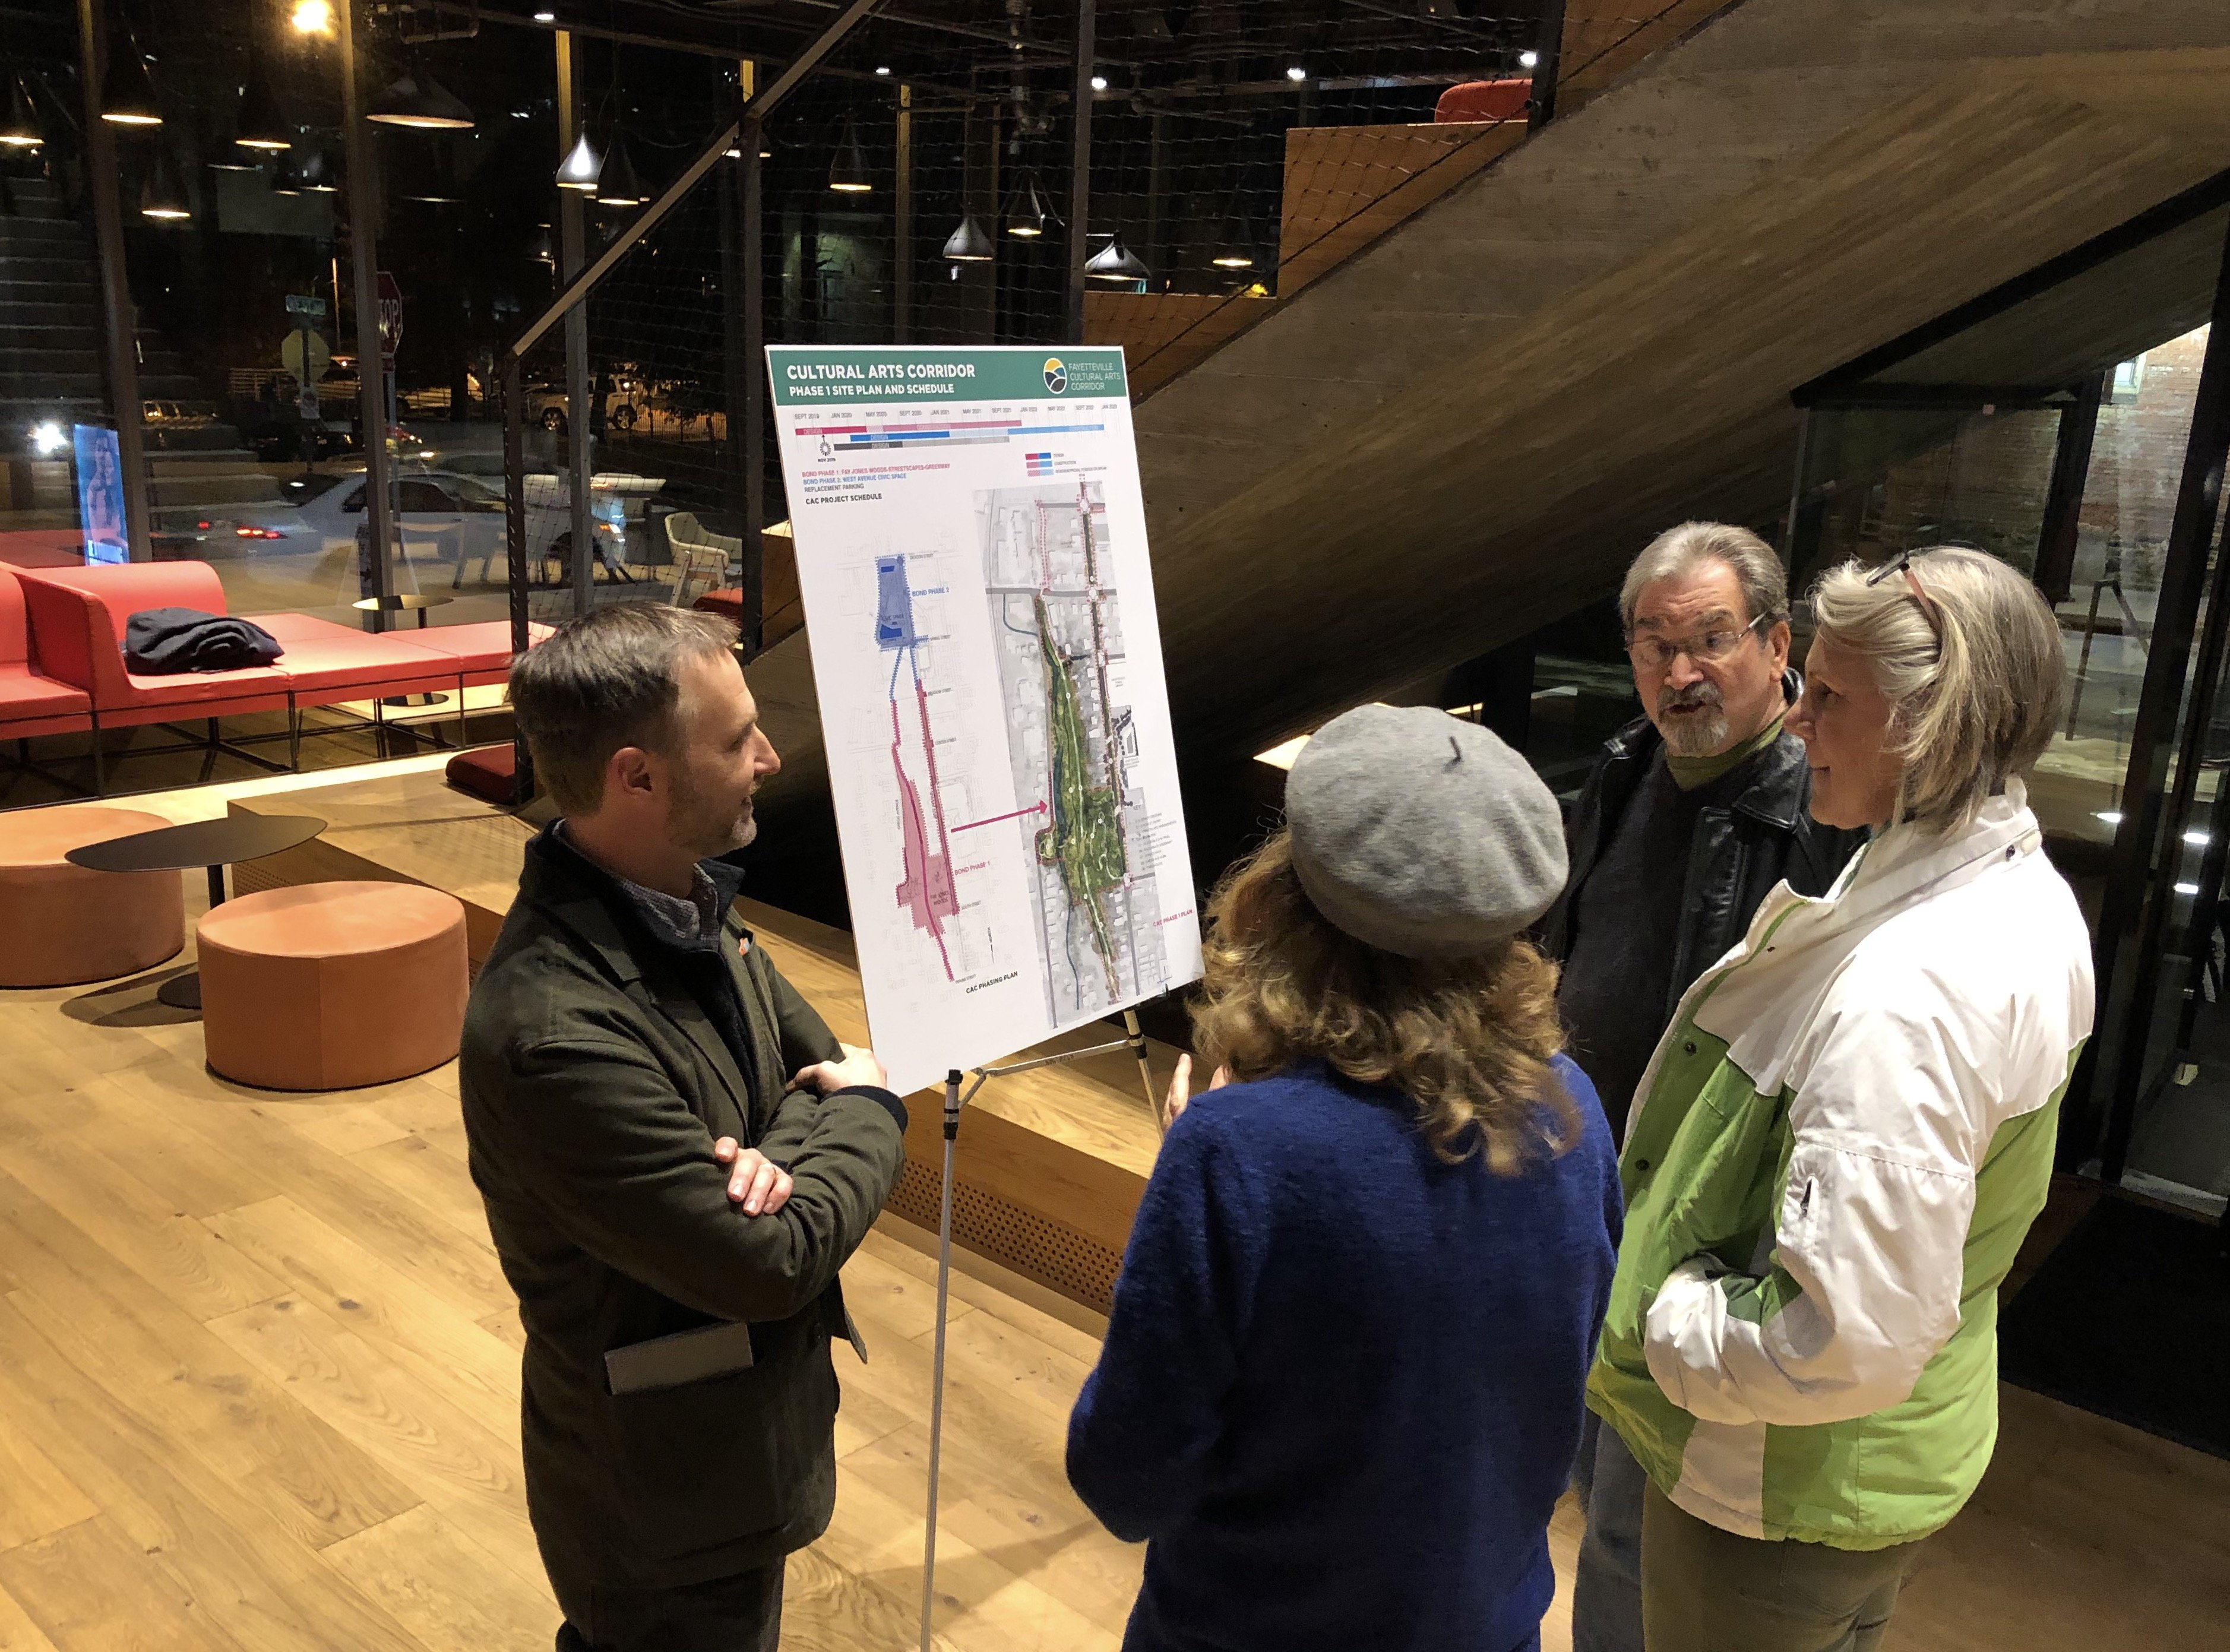 Concepts for initial phase of Fayetteville arts corridor on display